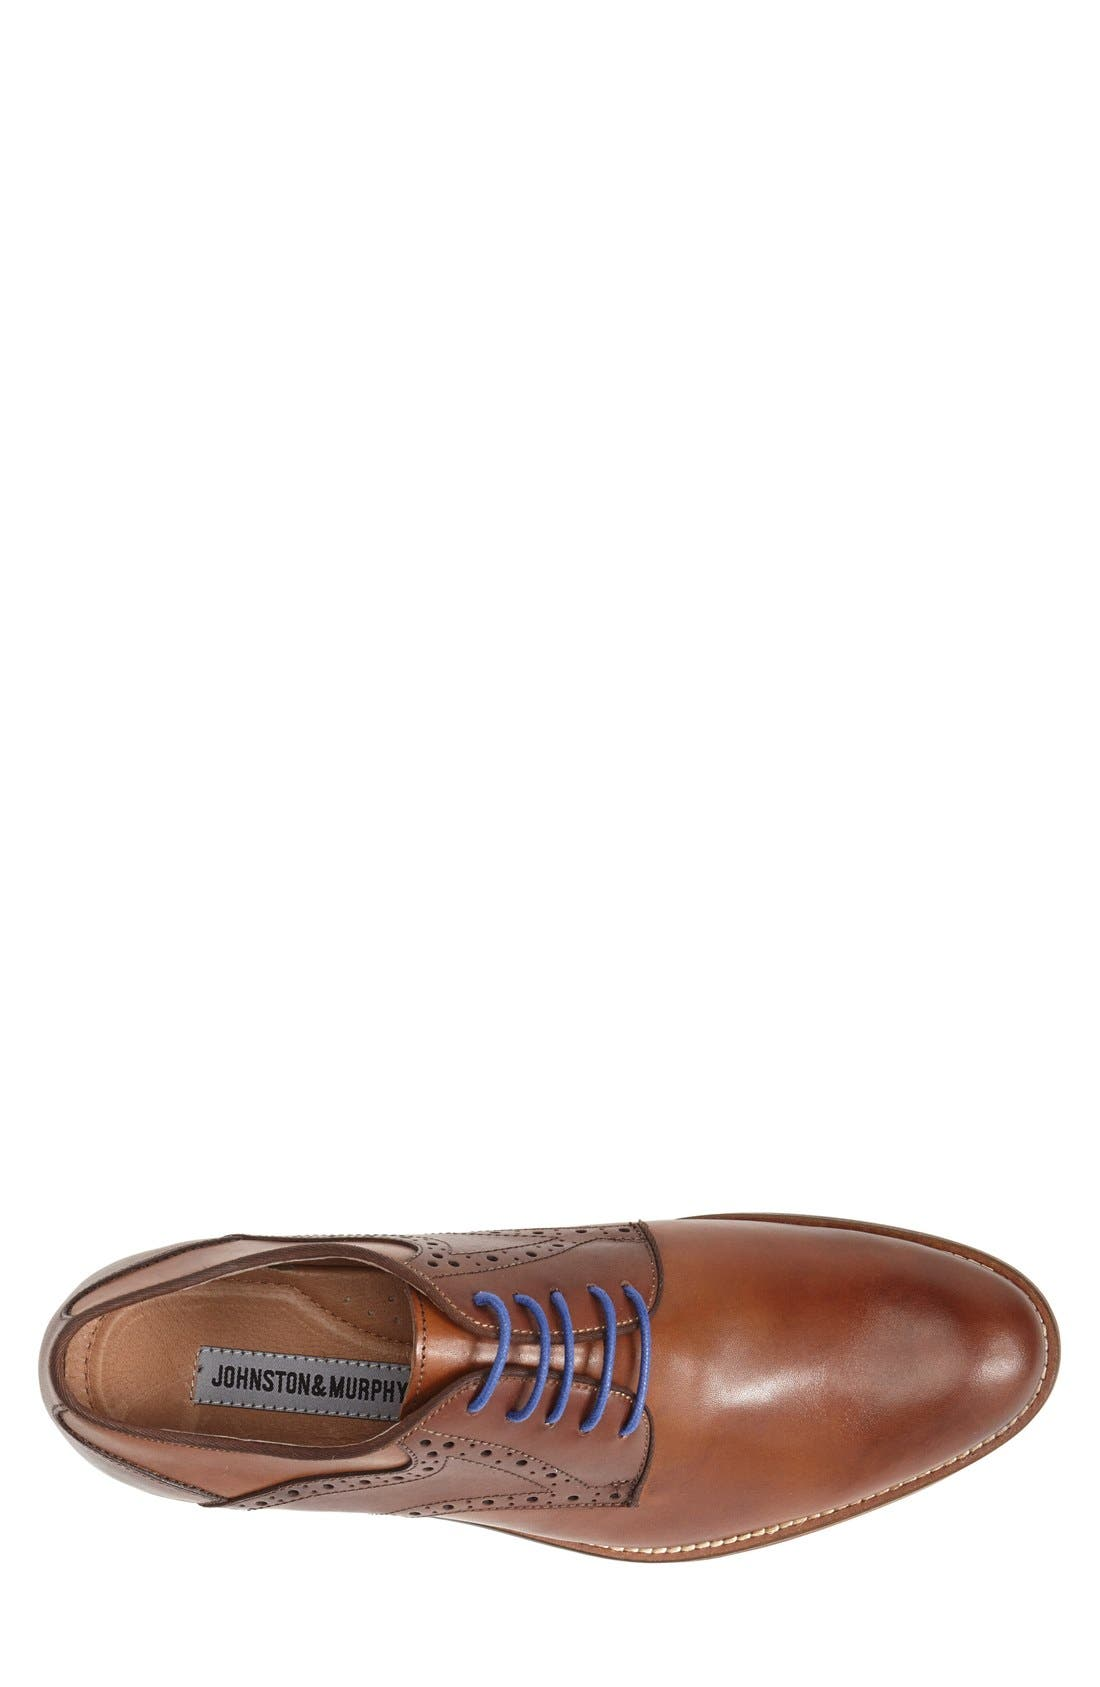 JOHNSTON & MURPHY, Conard Saddle Shoe, Alternate thumbnail 3, color, TAN/ DARK BROWN